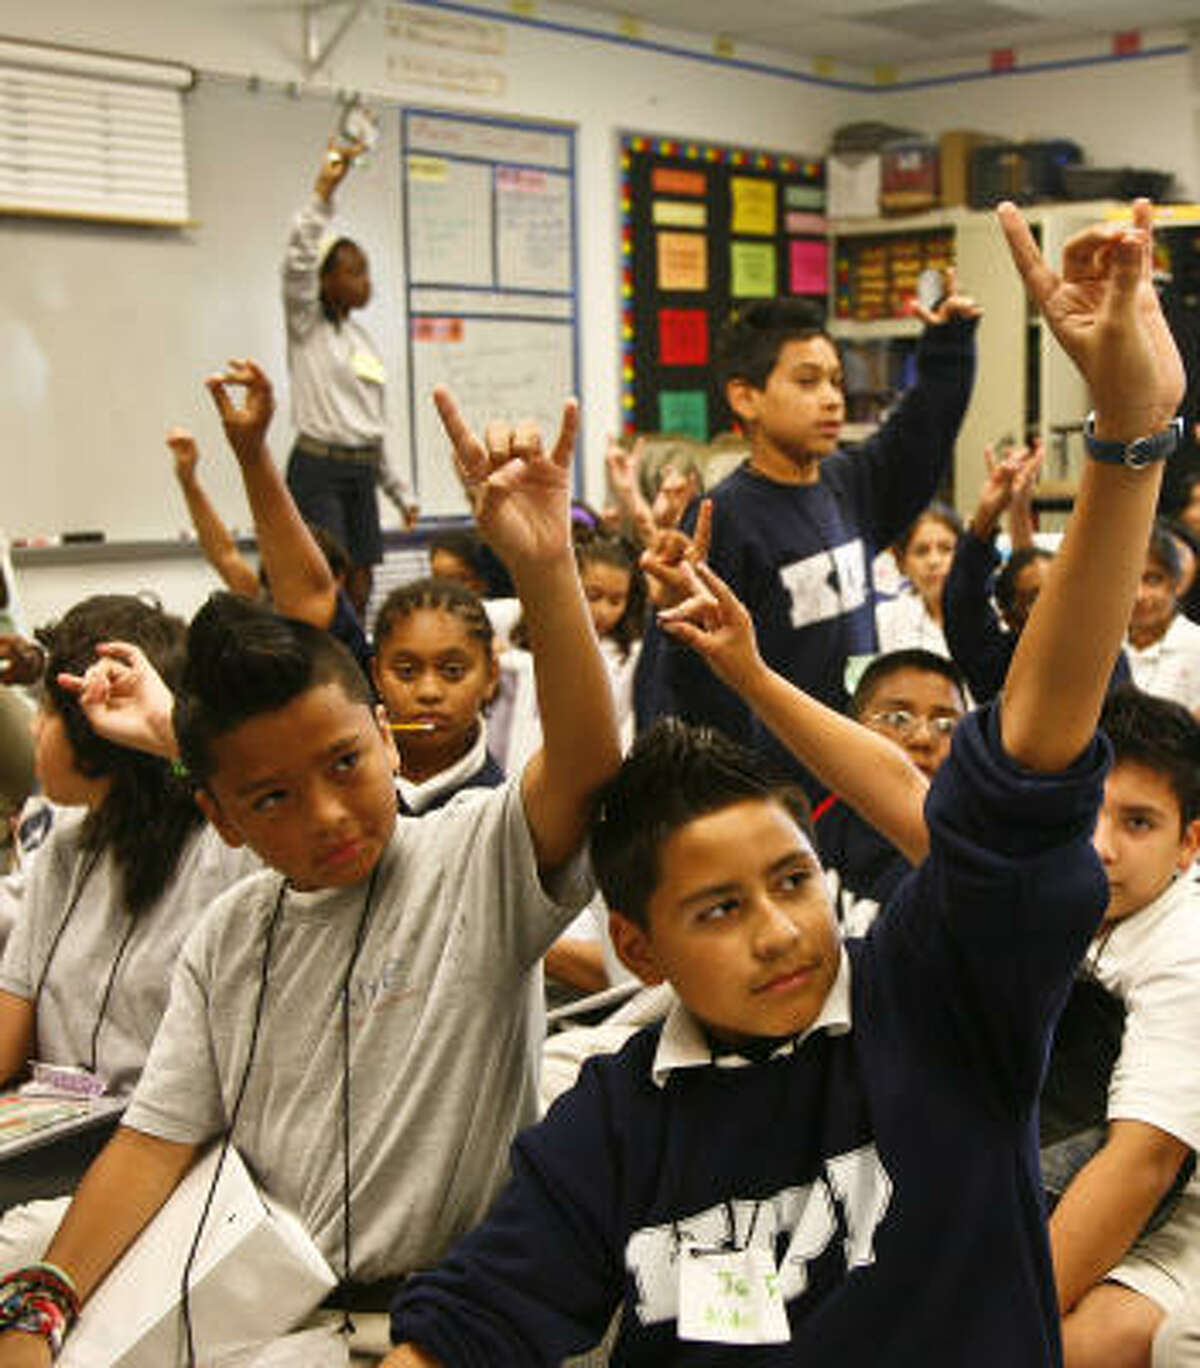 Sixth-graders raise their hands in response during a summer session class Monday at KIPP Academy. KIPP touted results of a study that dismisses questions about KIPP's methods.